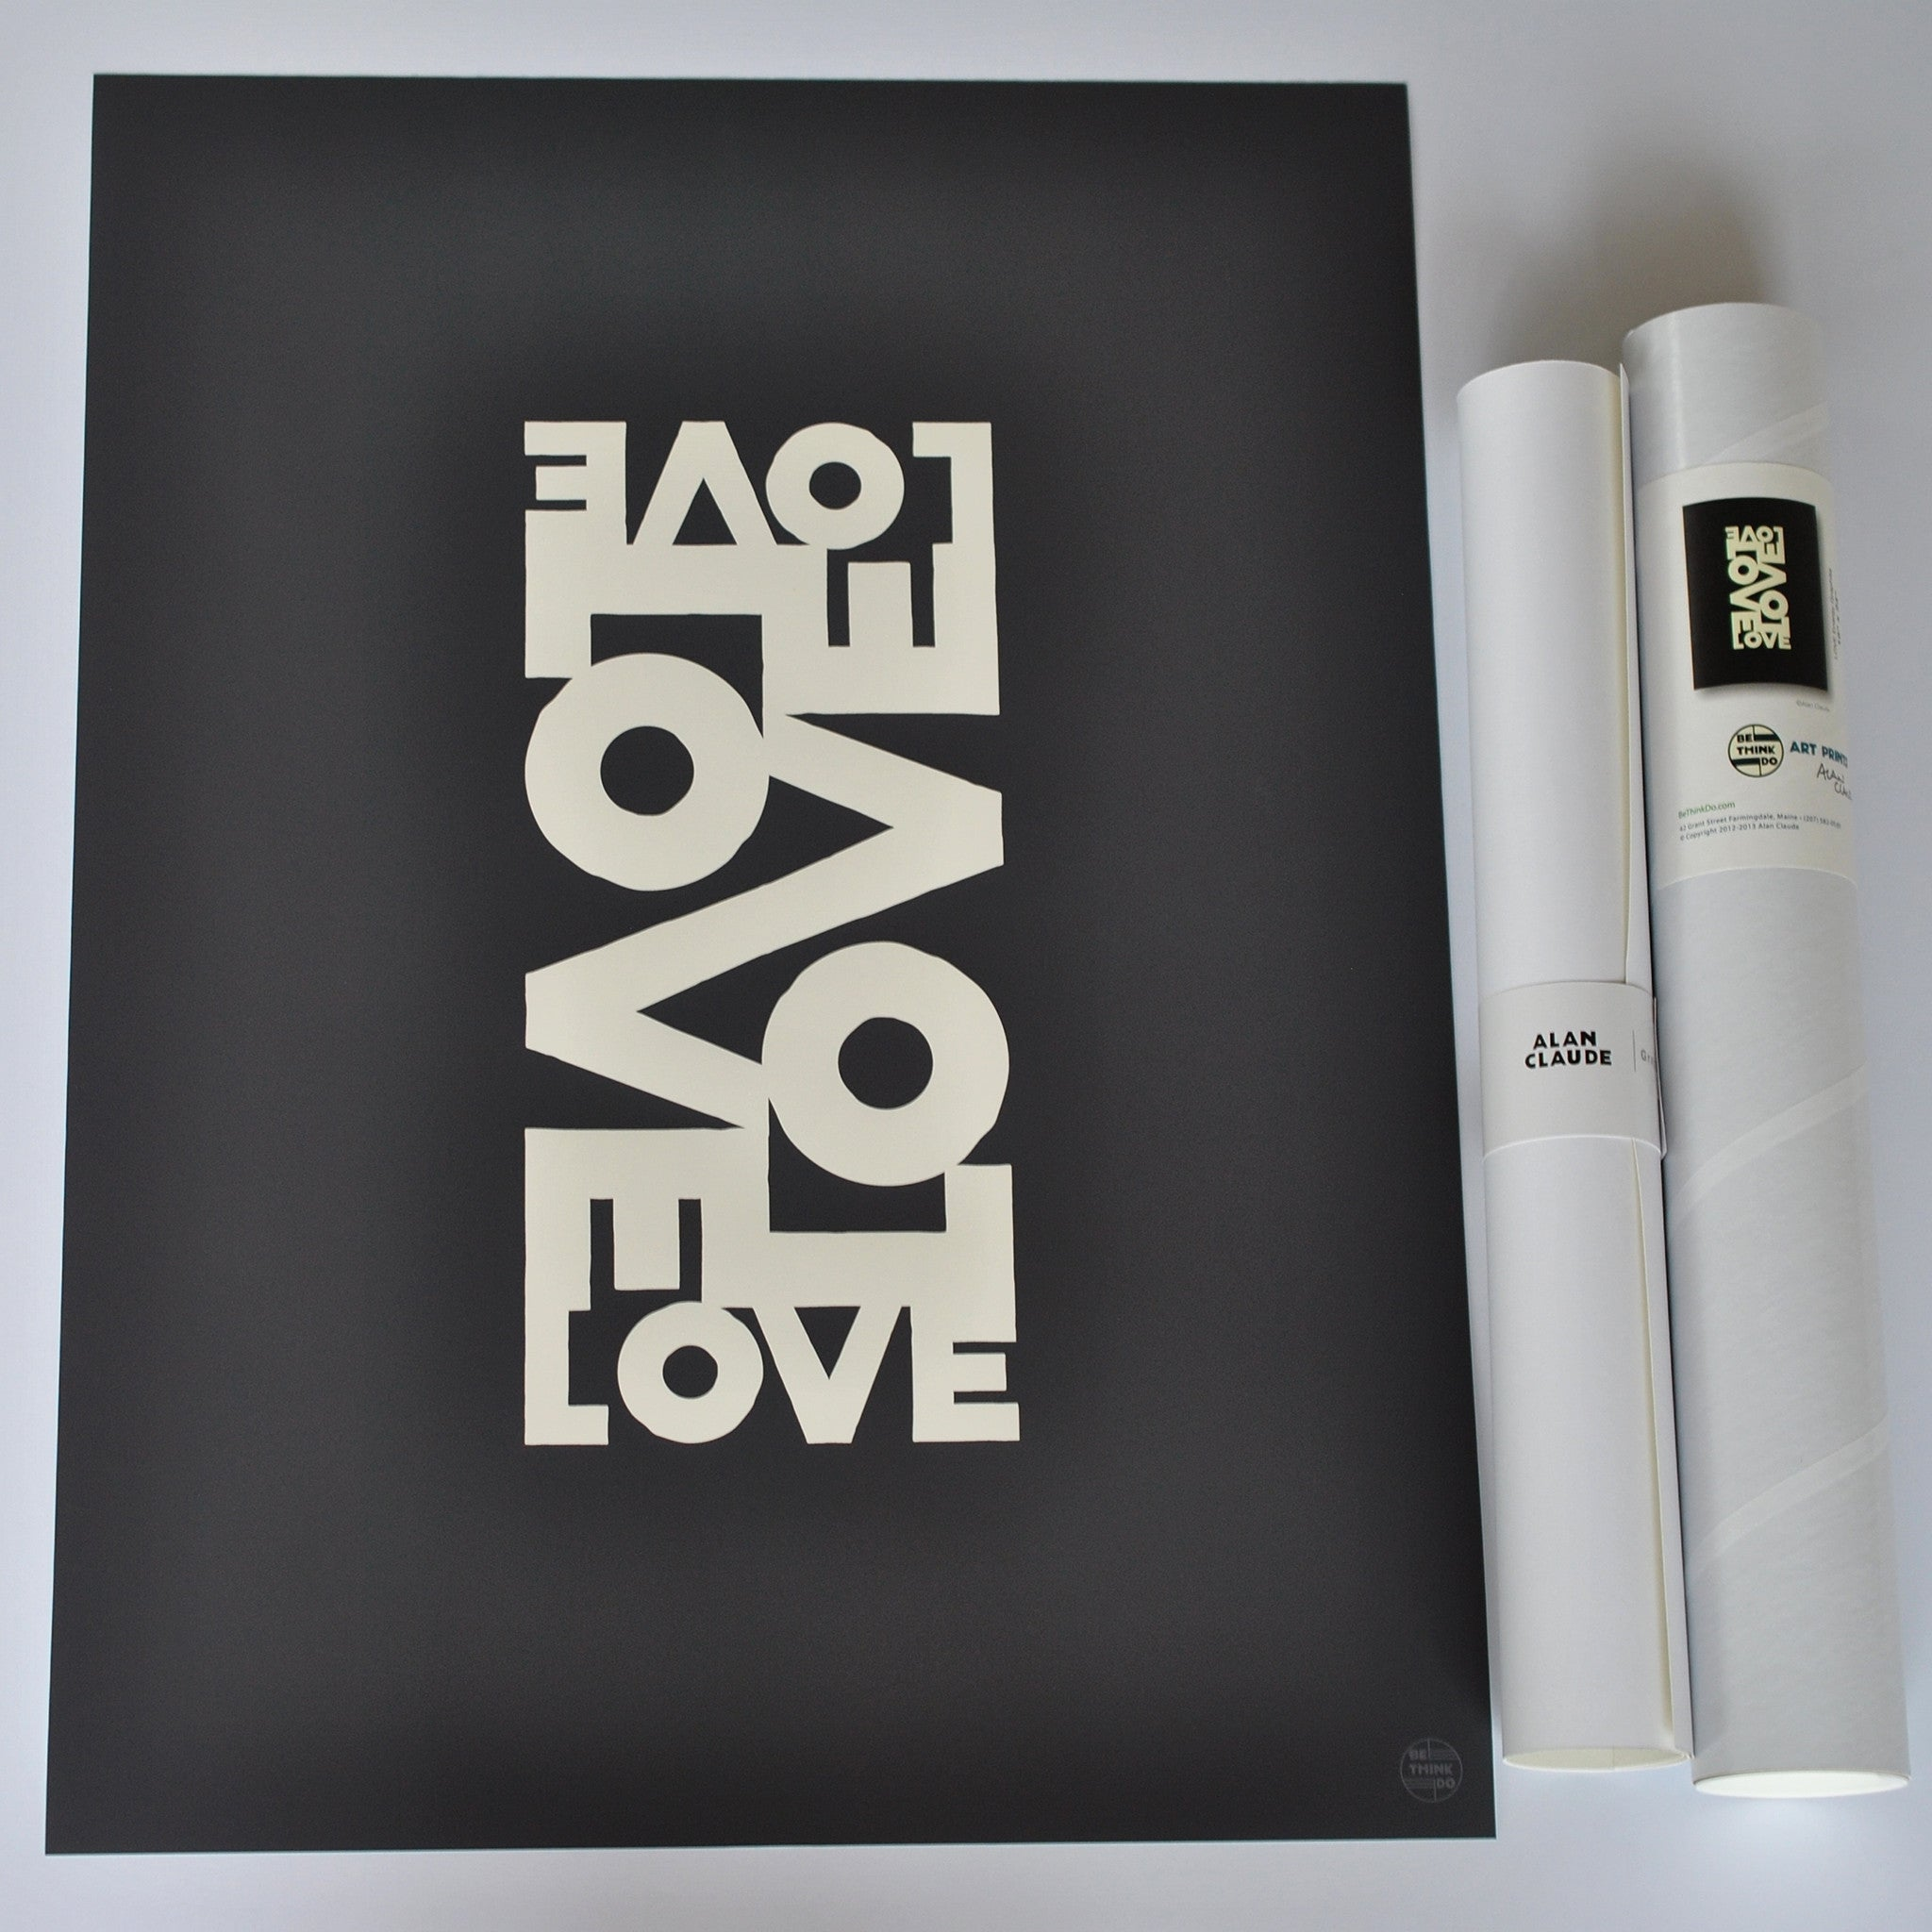 "Love Energy Graphite Art Print 18"" x 24"" Wall Poster"